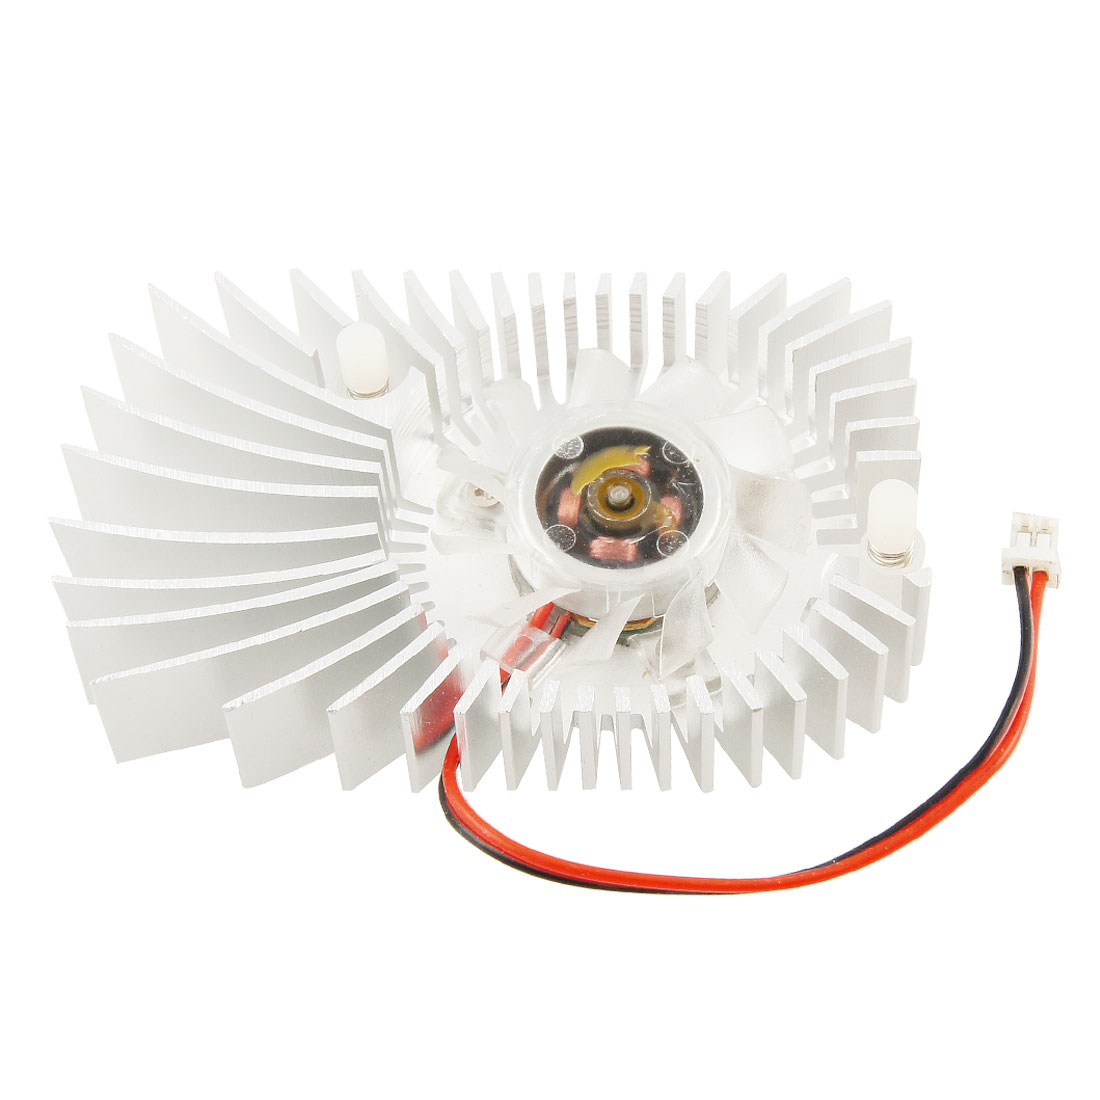 DC 12V 2 P Sparrow Shaped Computer Card Heatsink Cooling Fan Cooler